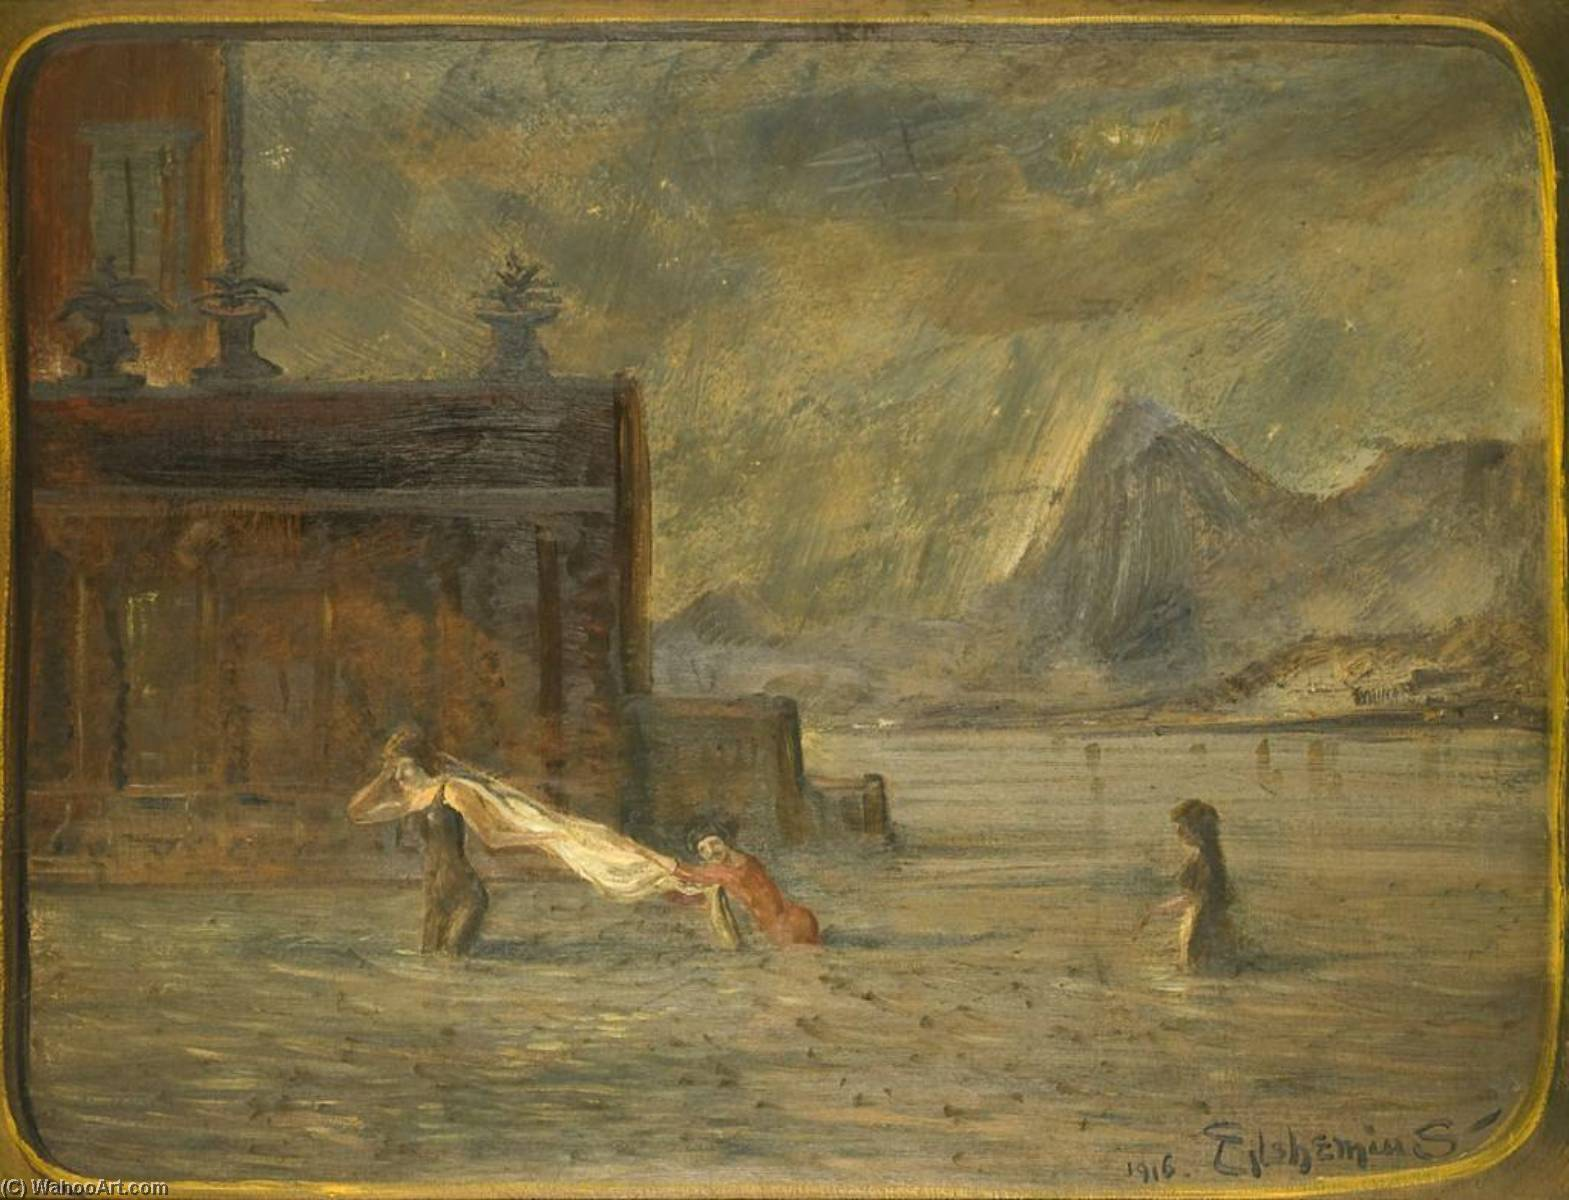 Achat Reproductions D'art Sur Toile : barbotage à travers  eau , 1916 de Louis Michel Eilshemius (1864-1941, United States) | WahooArt.com